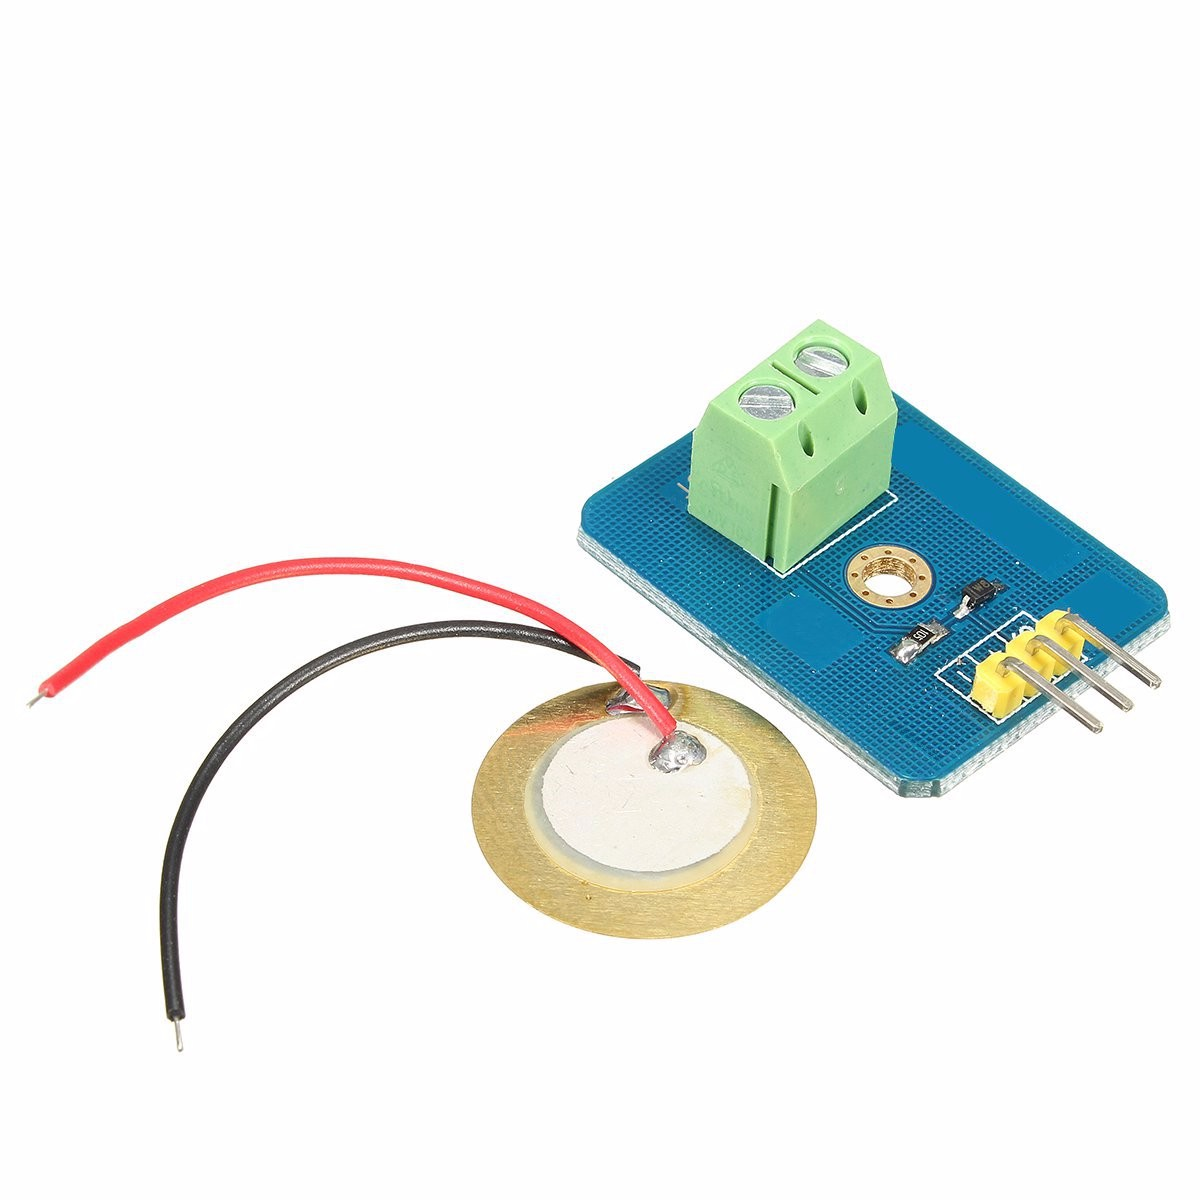 Analog Piezoelectricity Ceramic Piezo Vibration Sensor For Arduino UNO Rev3